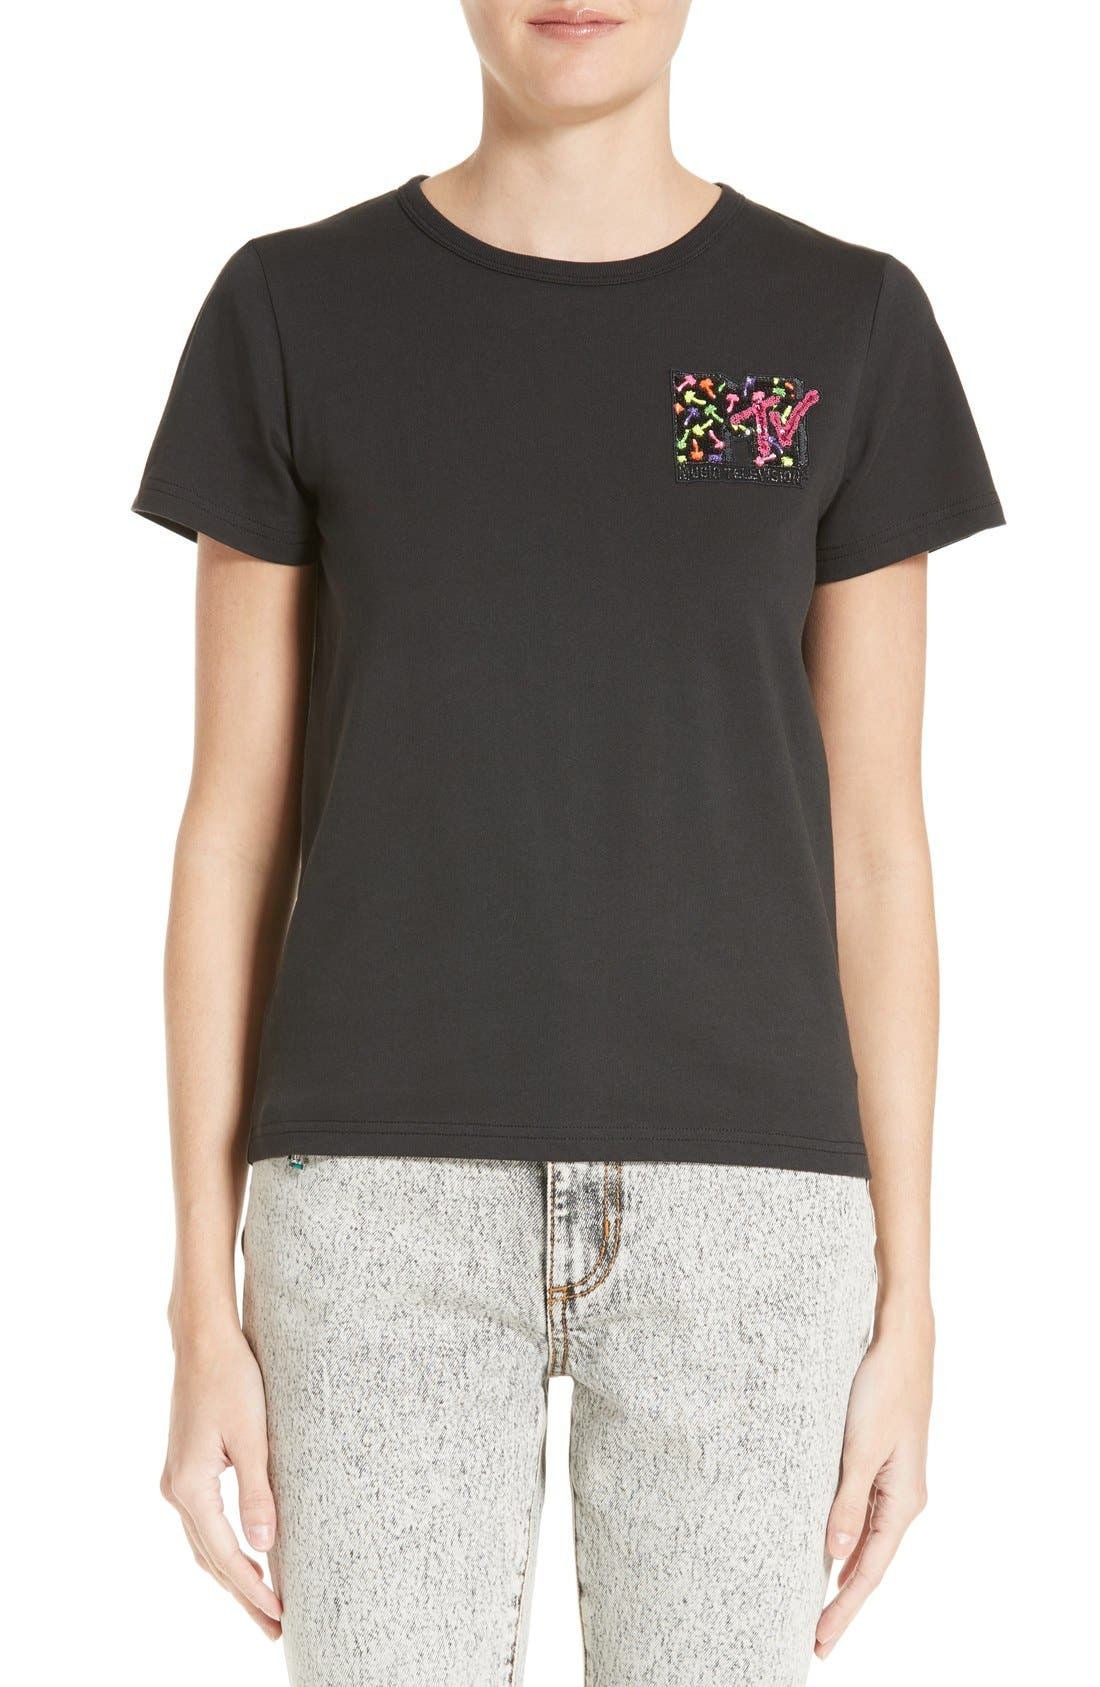 MARC JACOBS x MTV Embroidered Logo Tee